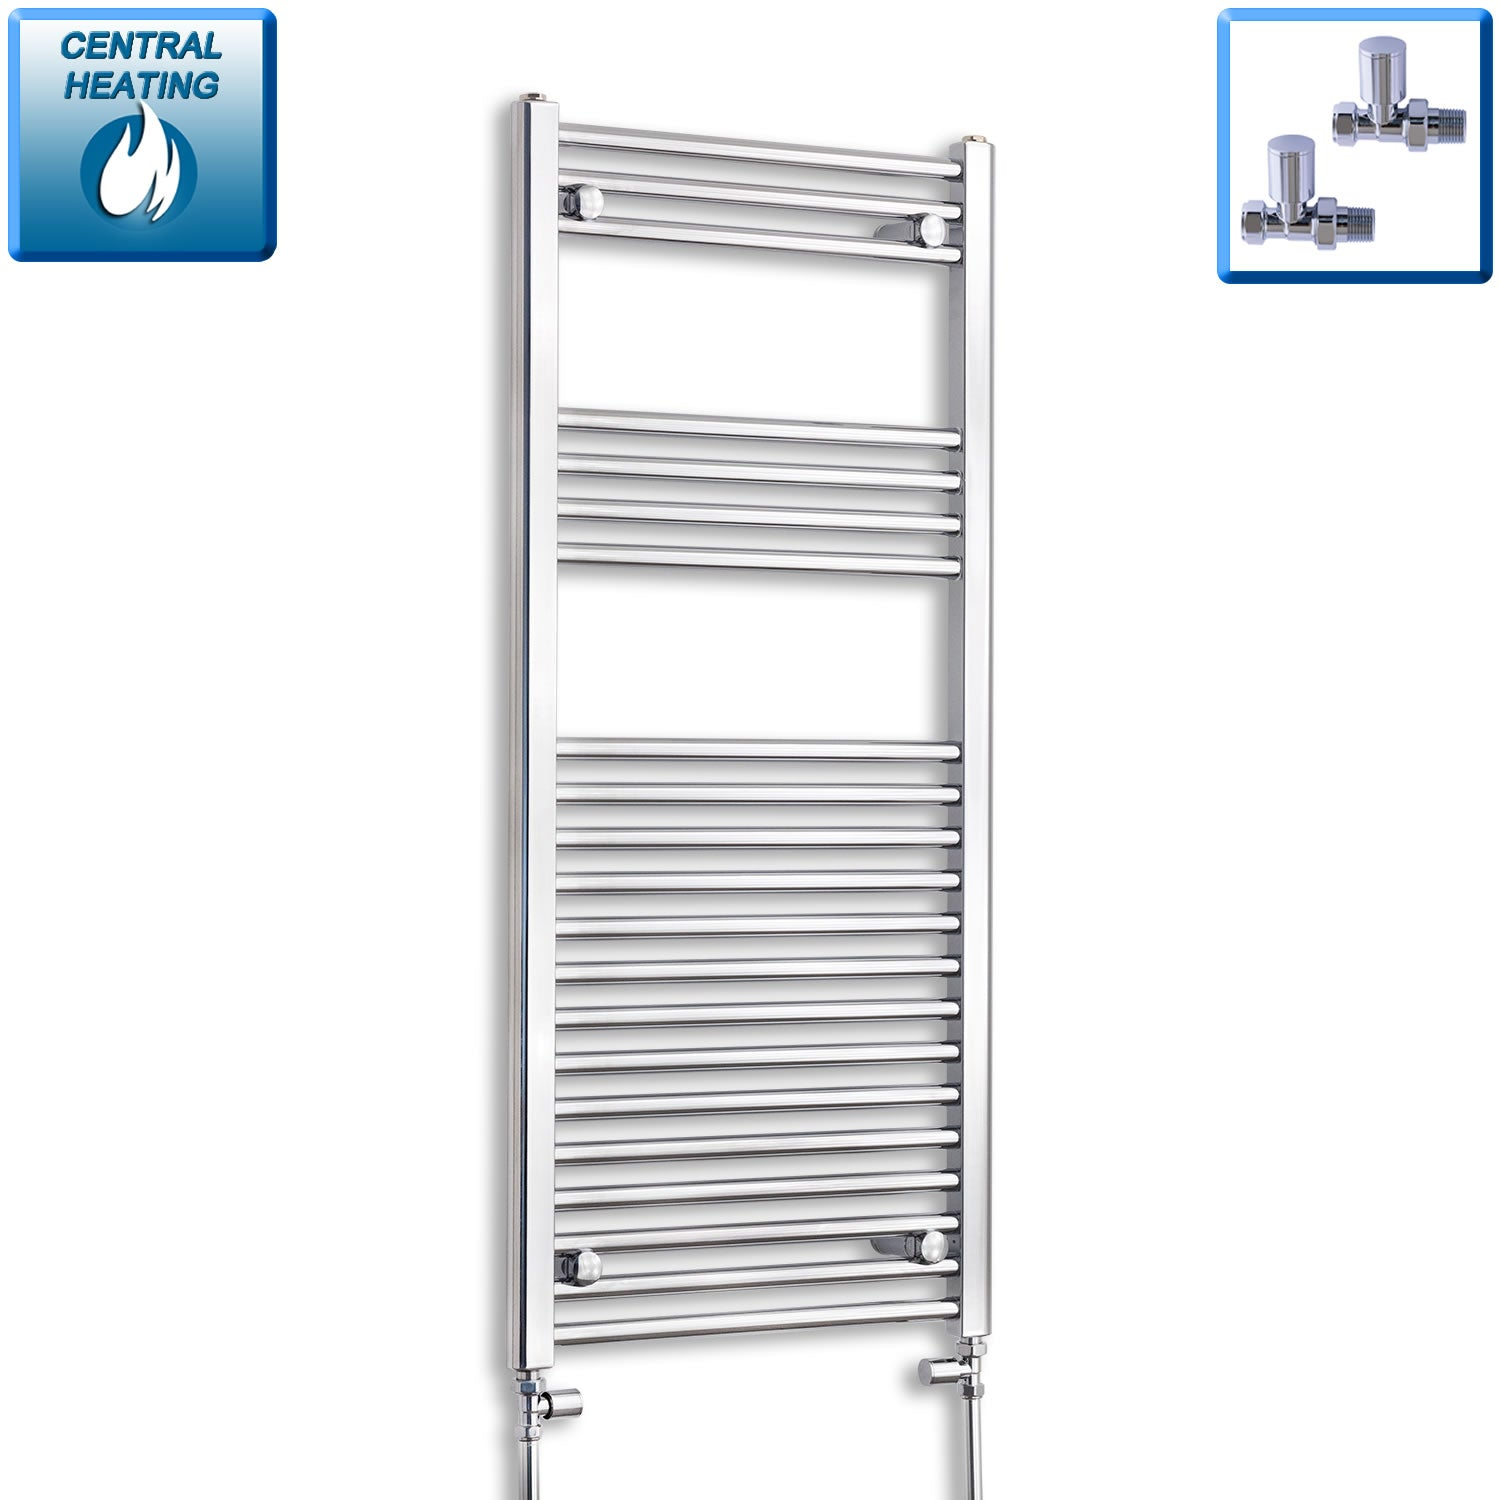 600mm Wide 1100mm High Chrome Towel Rail Radiator With Straight Valve